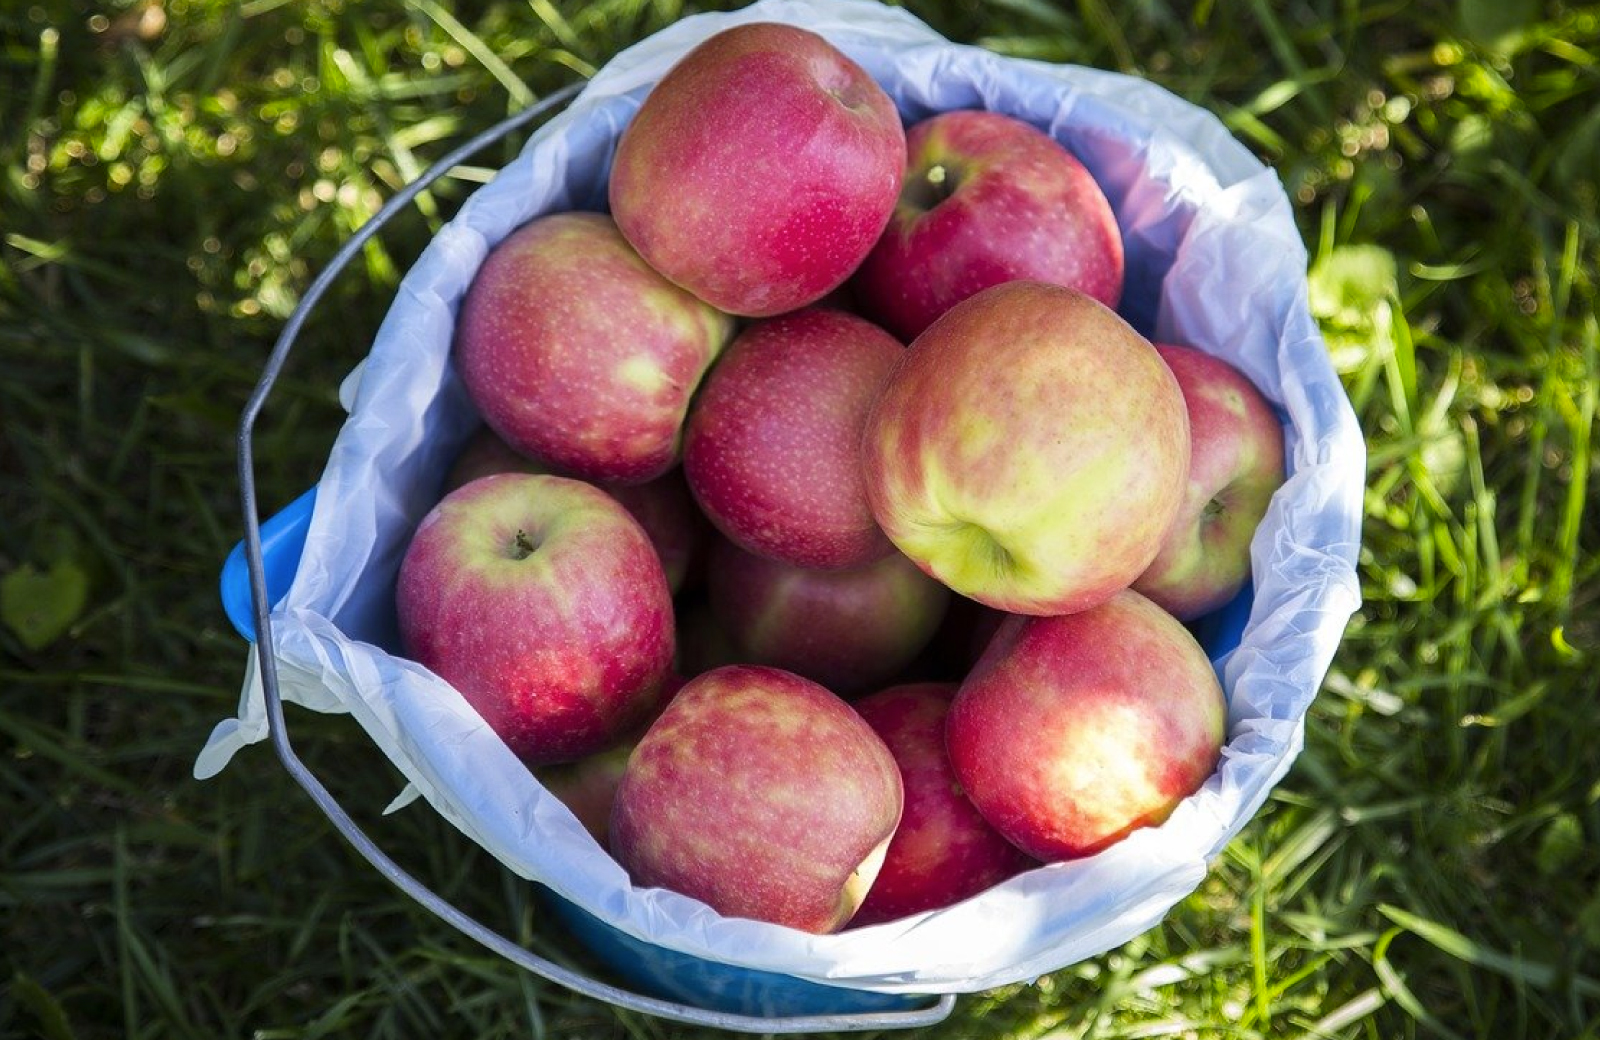 Fairfield County Apple-Picking Adventure - The Waypointe Apts